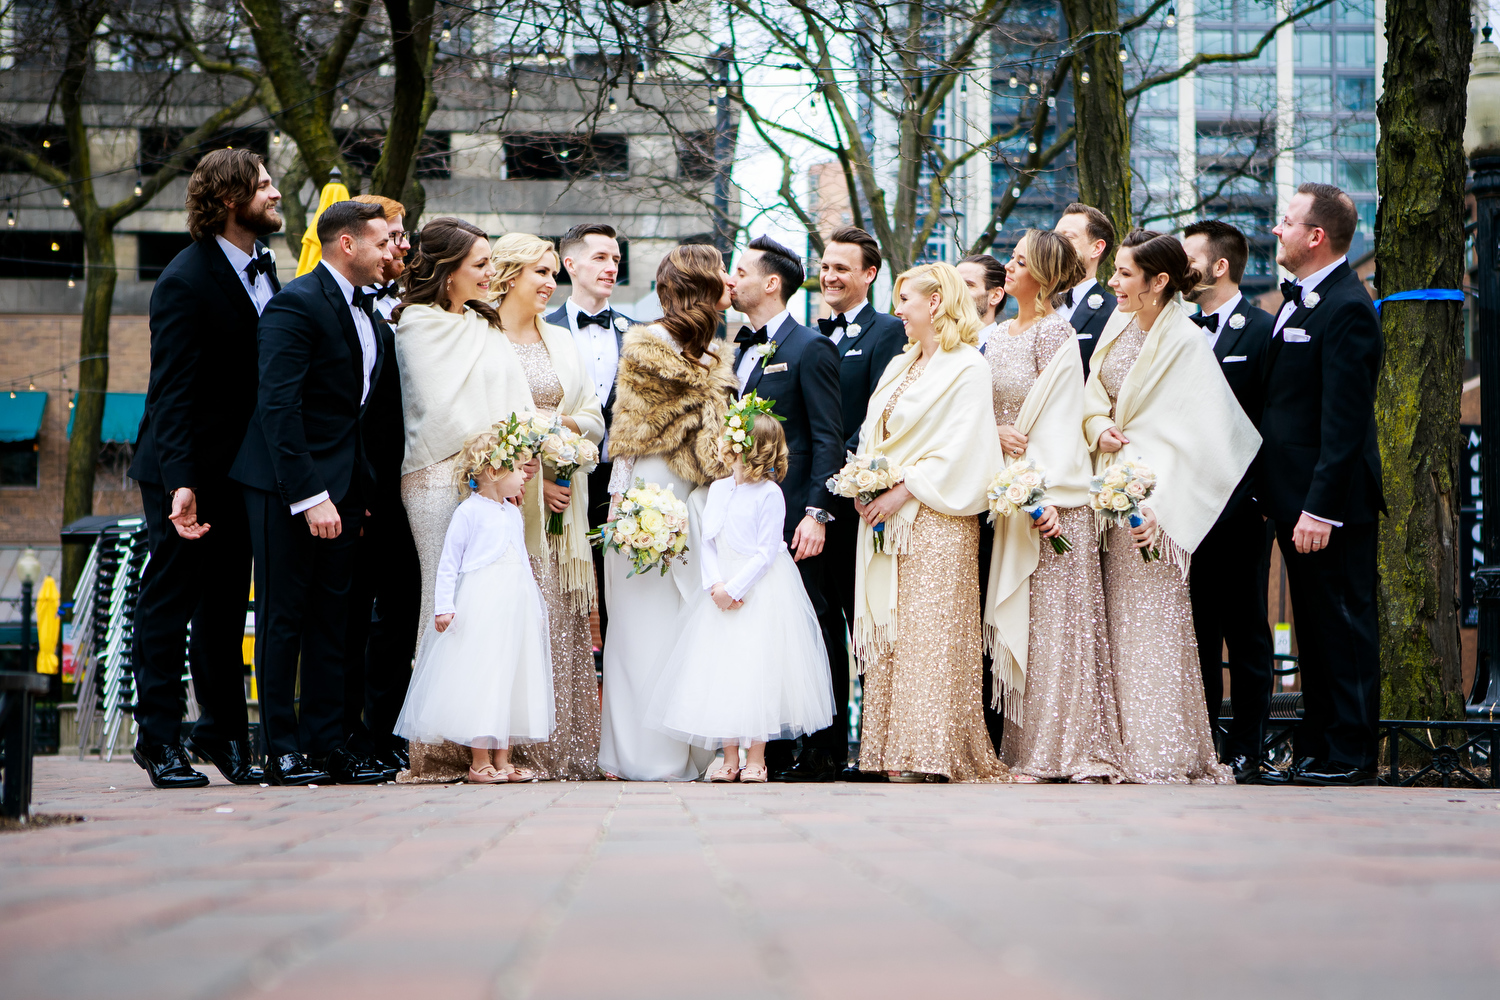 Wedding party photo at Mariano Park before a Thompson Chicago wedding.